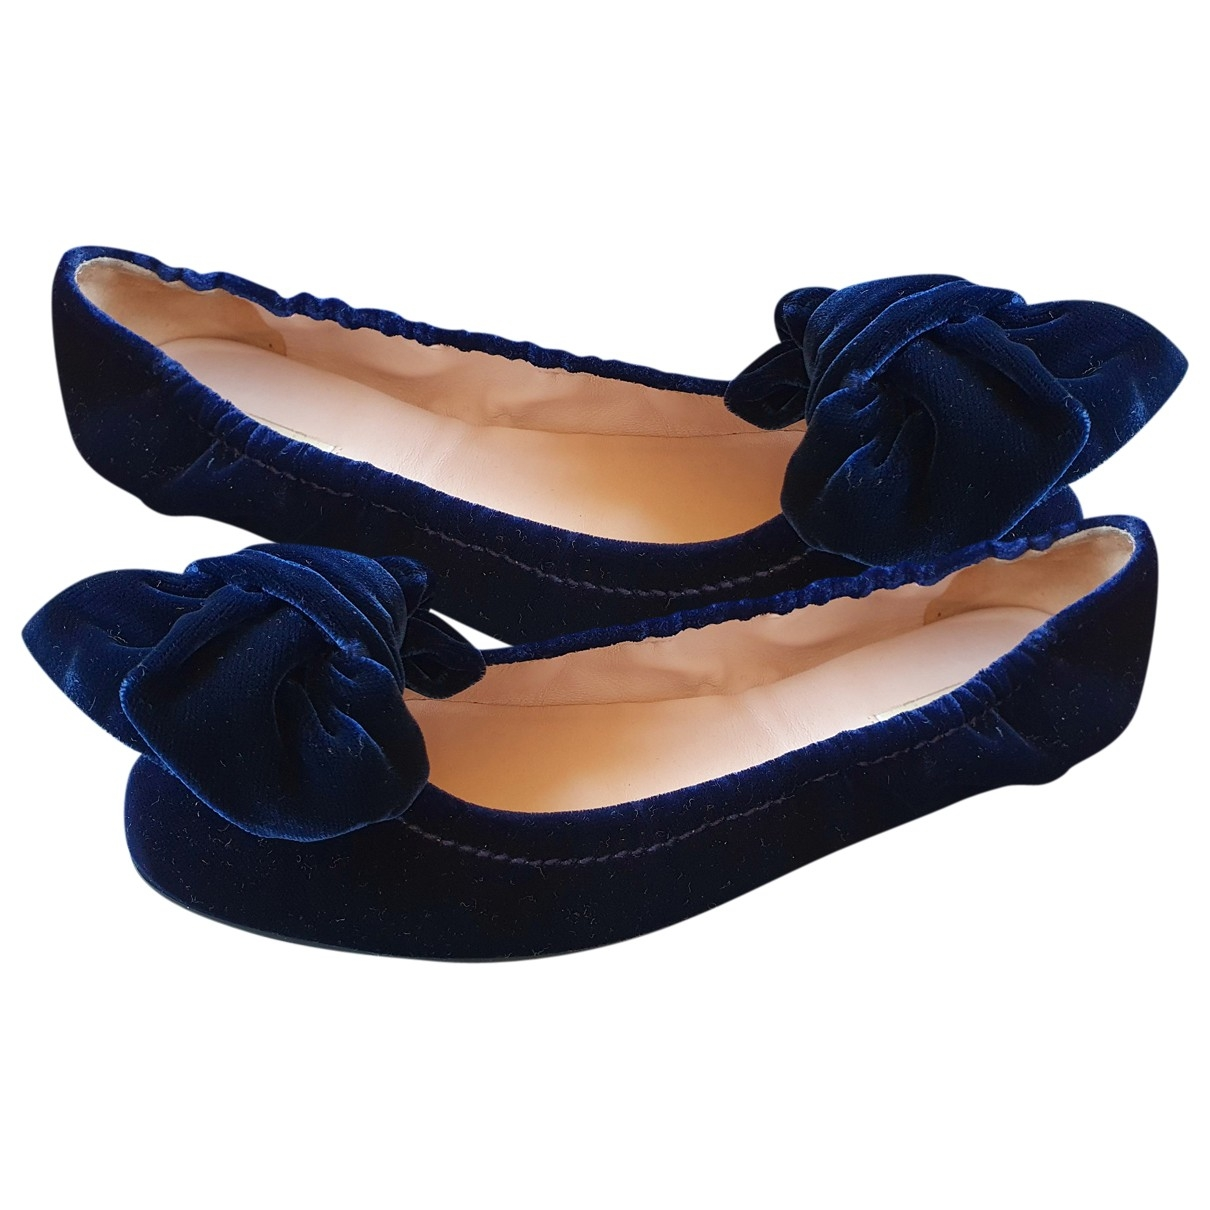 Miu Miu \N Blue Velvet Ballet flats for Women 36 EU